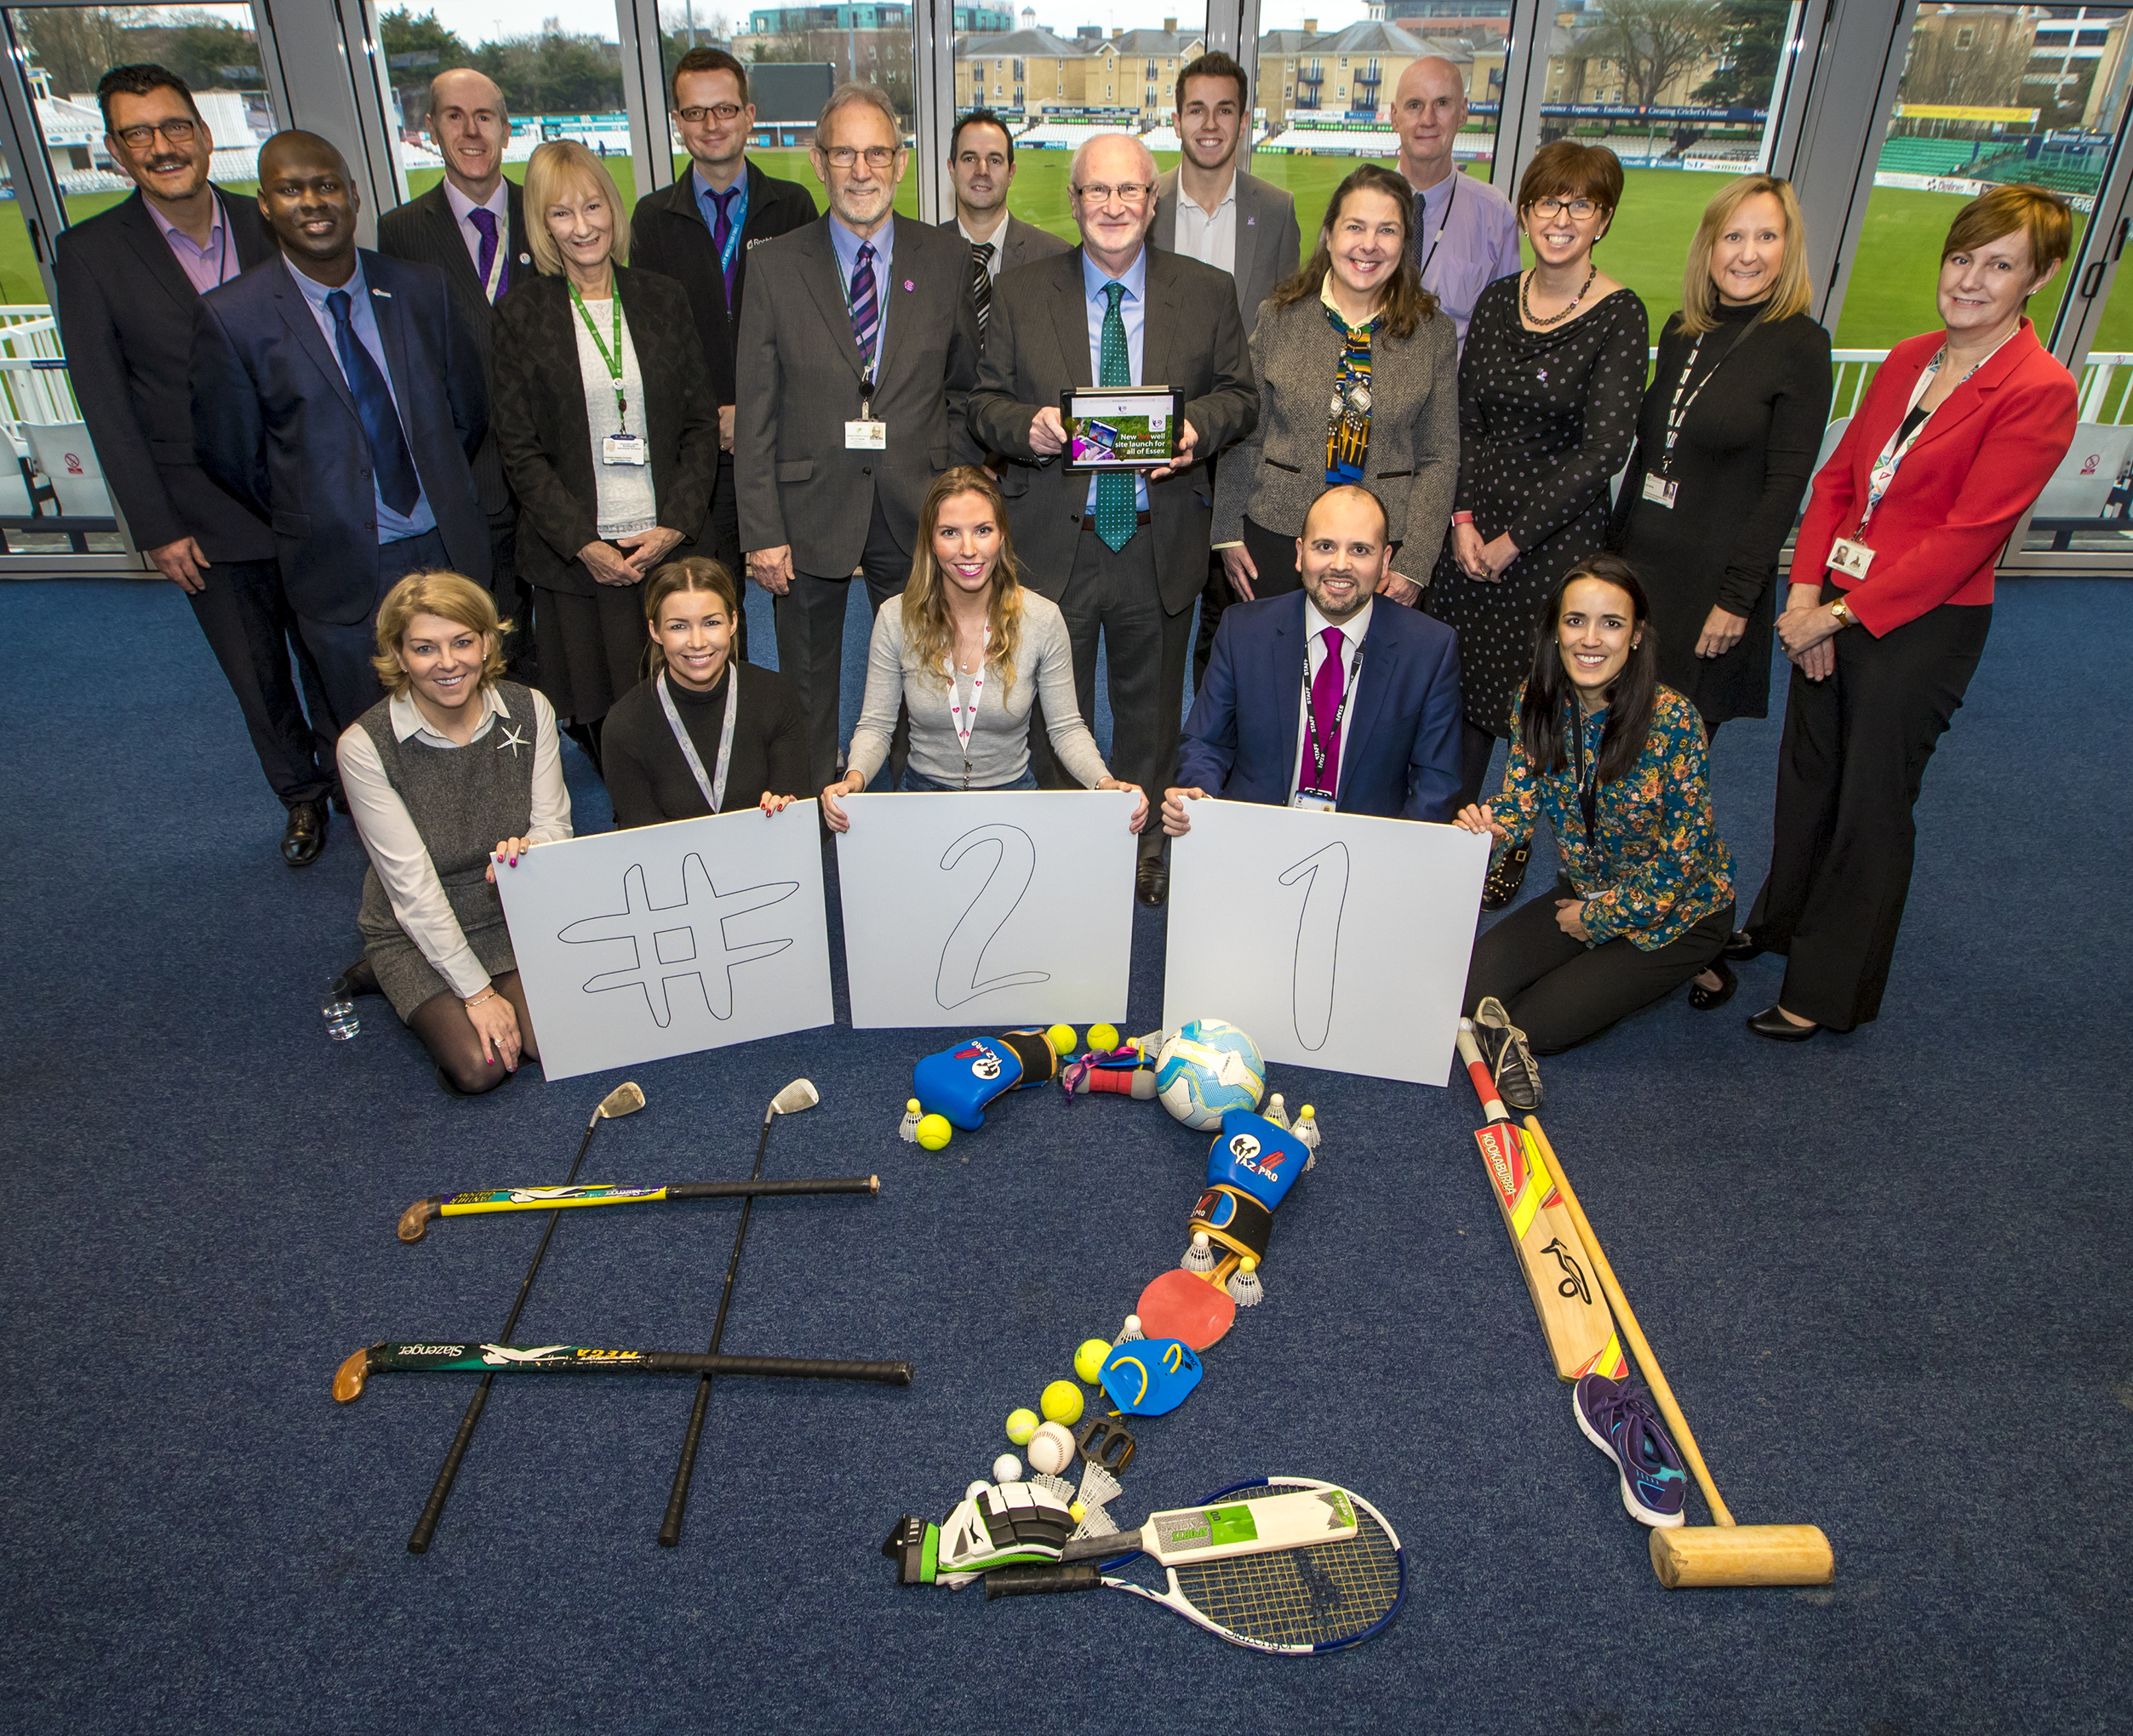 Livewell website and campaign launch photo with Essex authorities